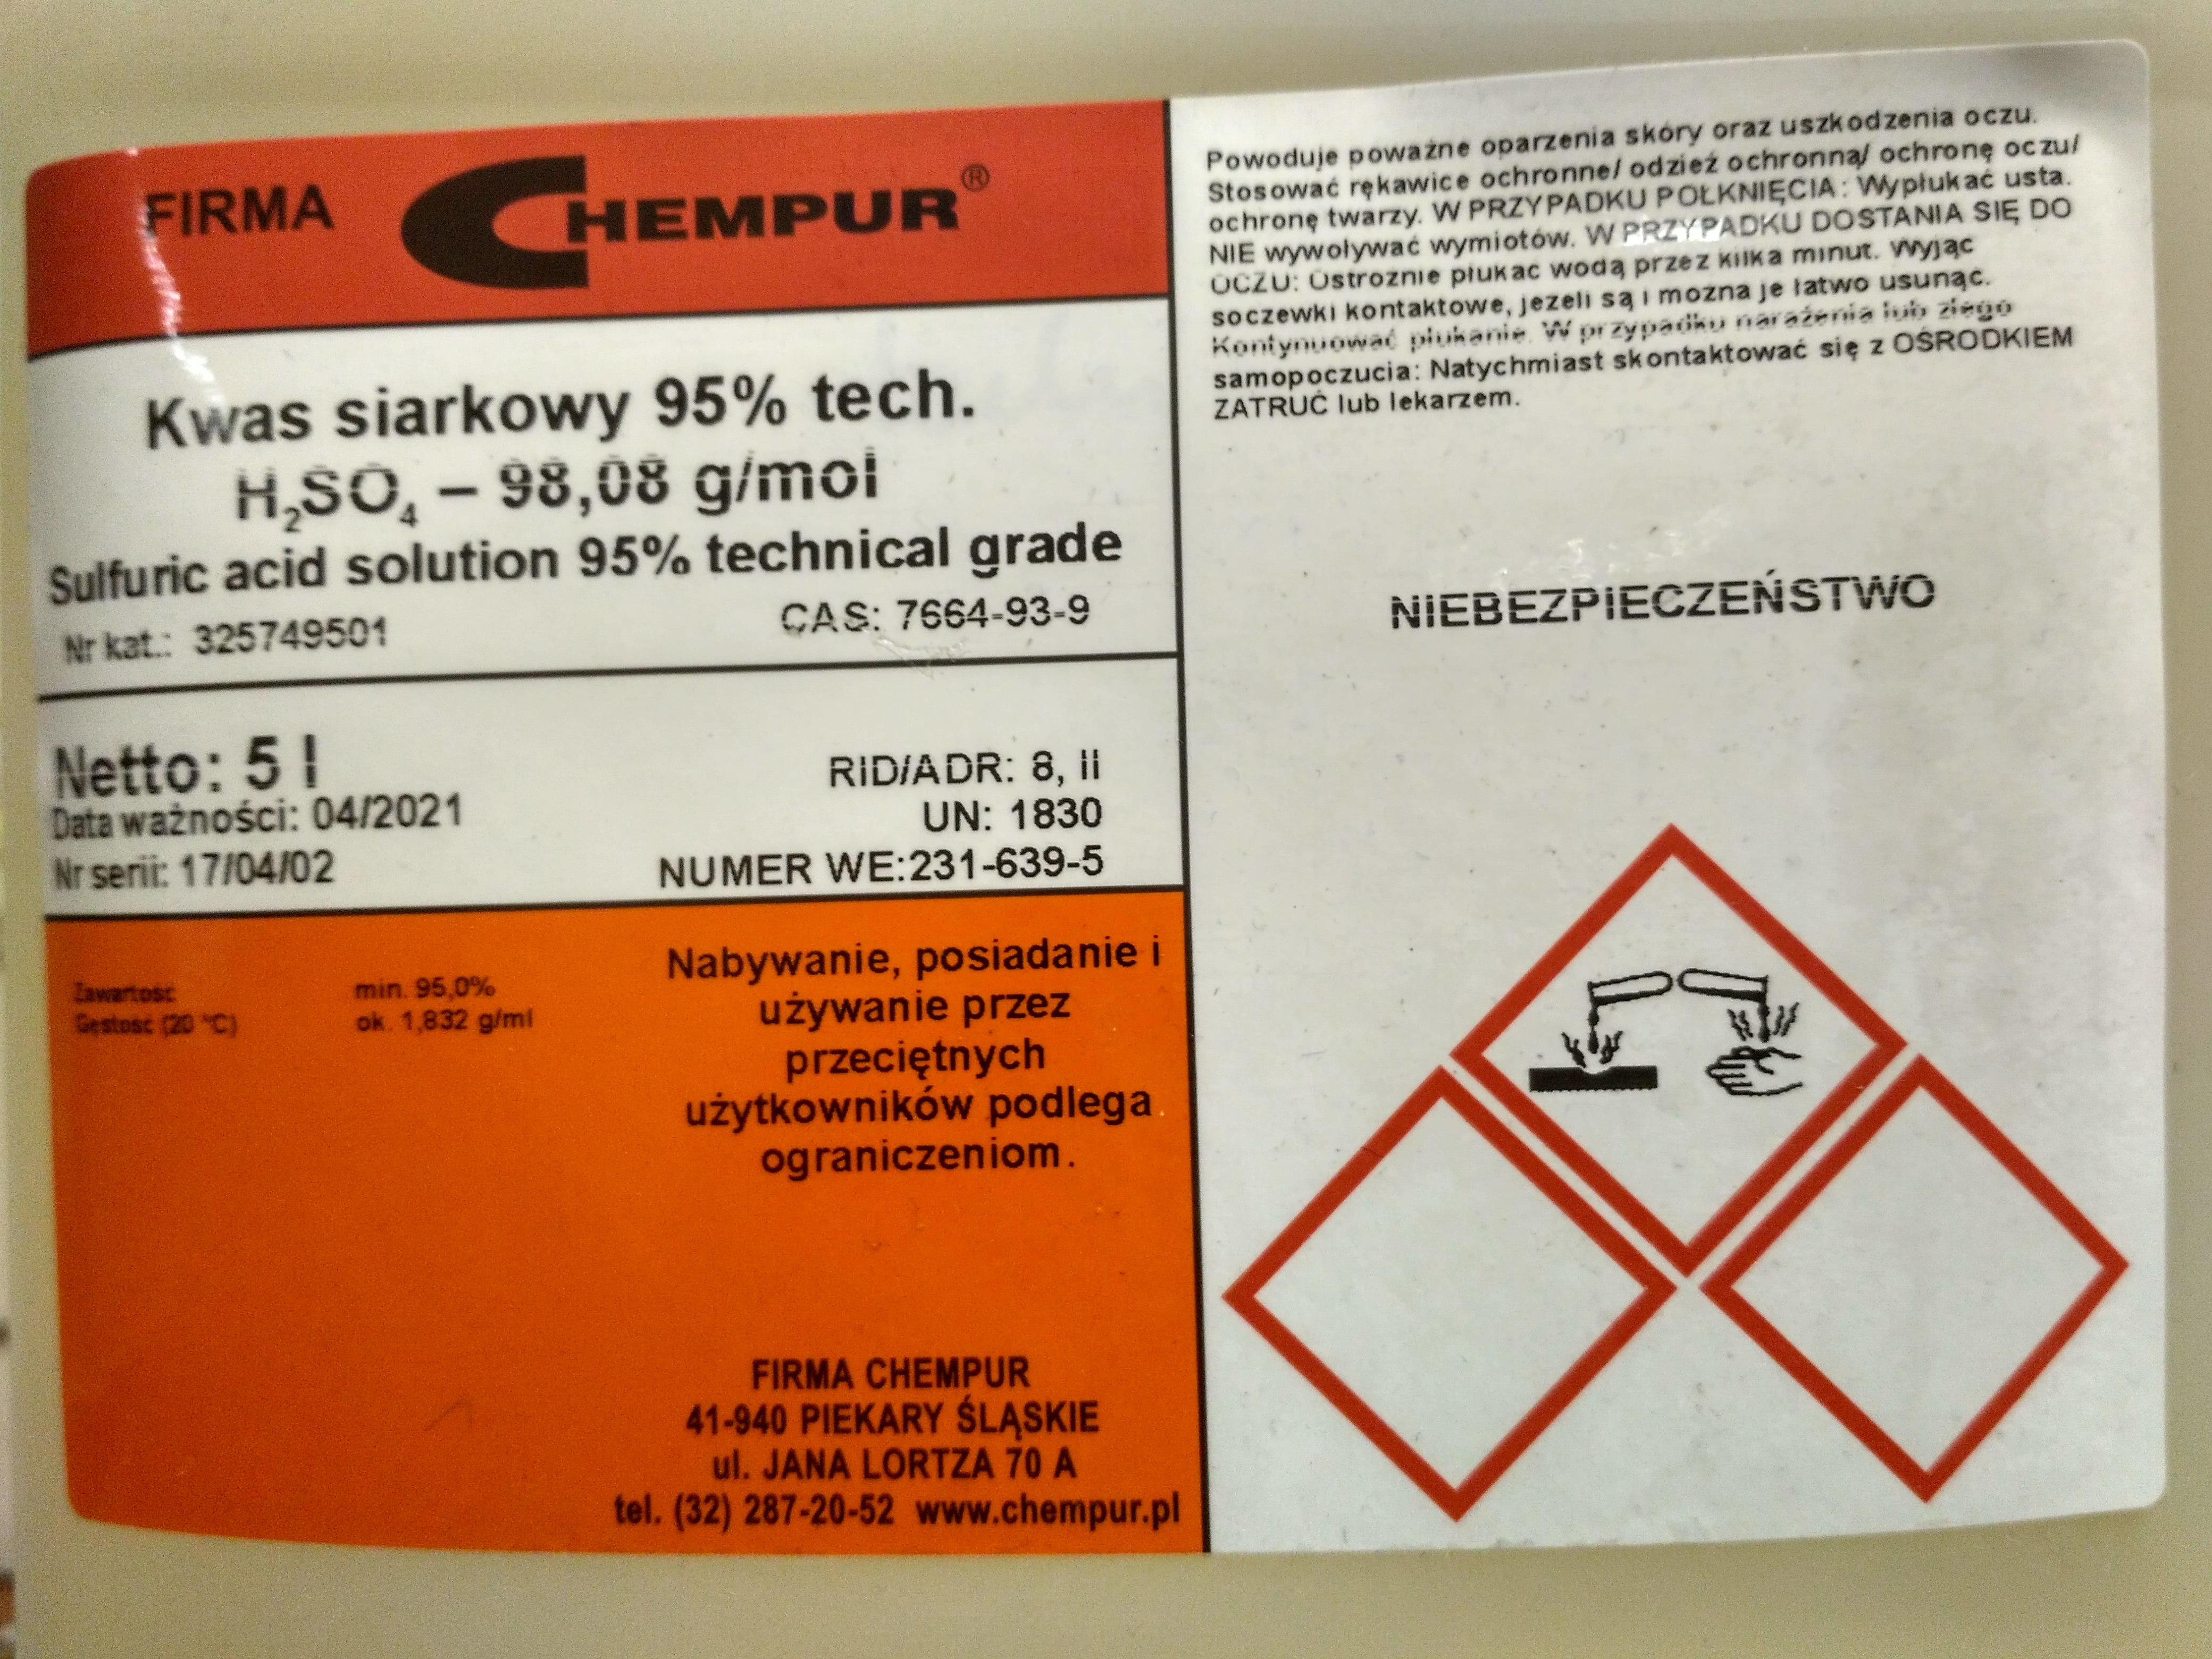 Sulfuric acid solution 95% technical grade